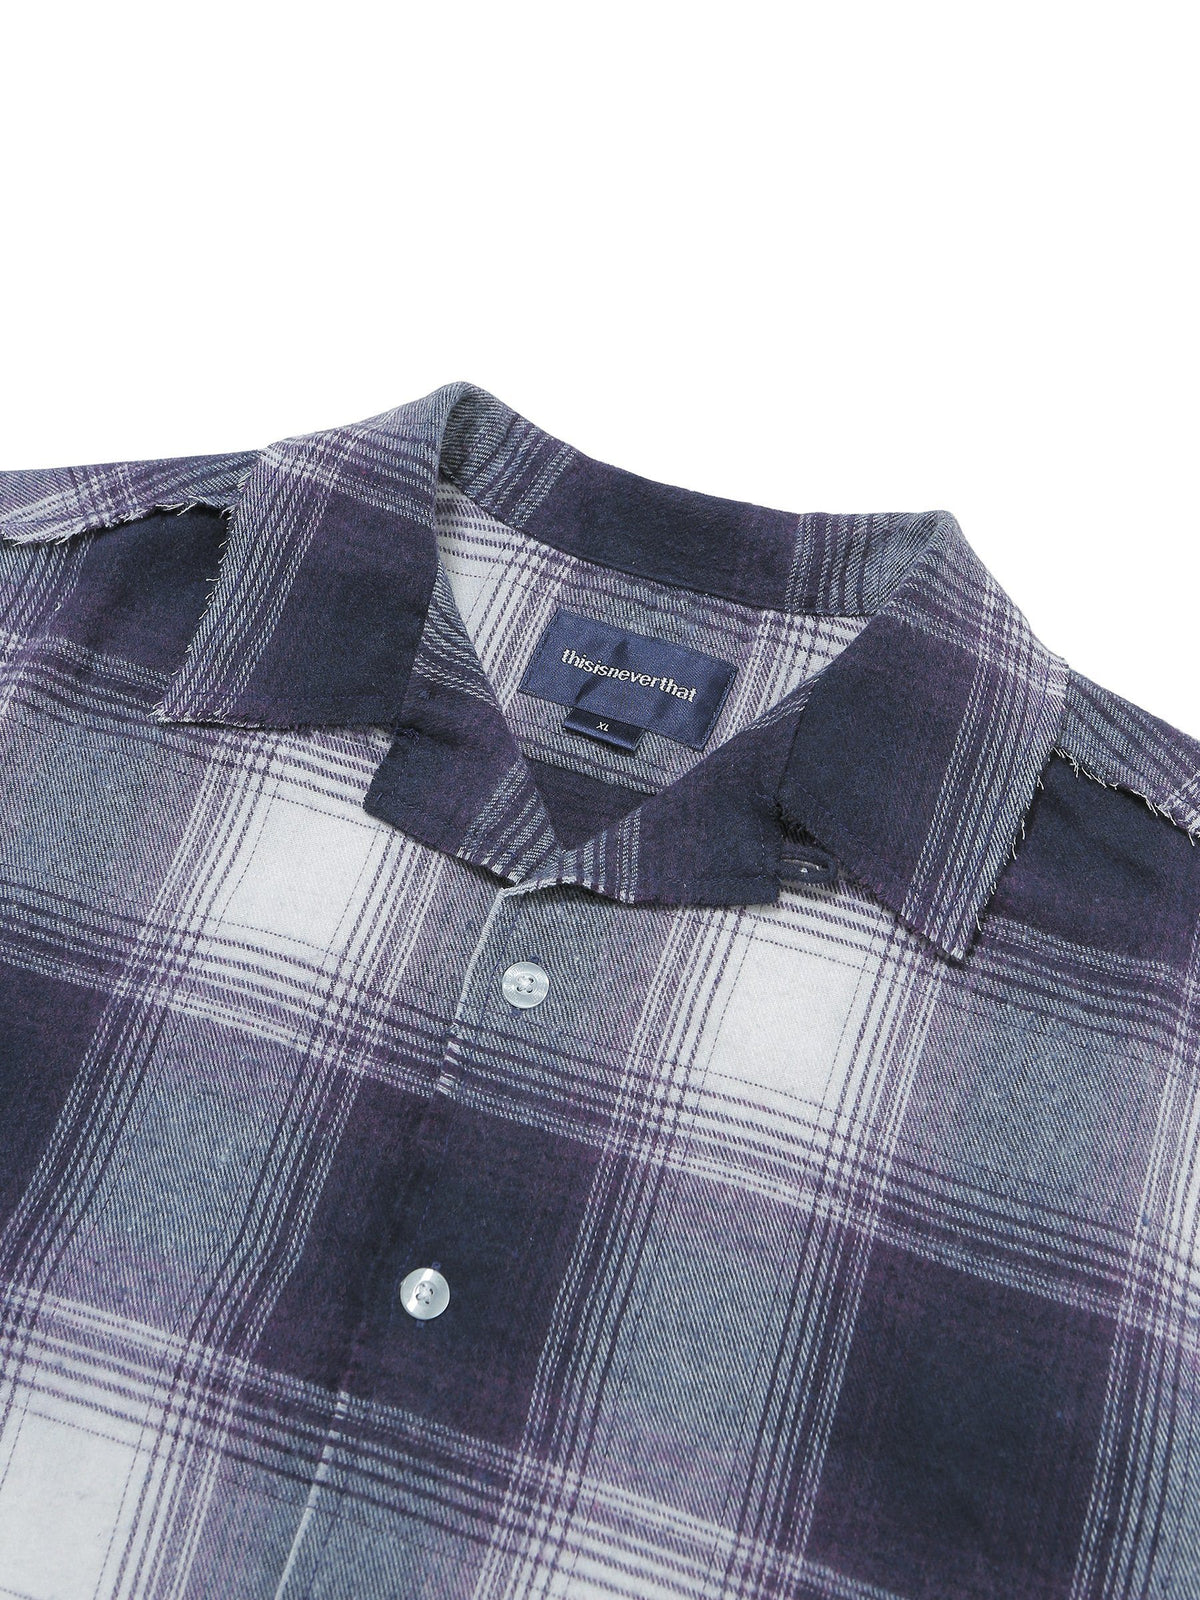 Cut-Off Check Shirt - thisisneverthat